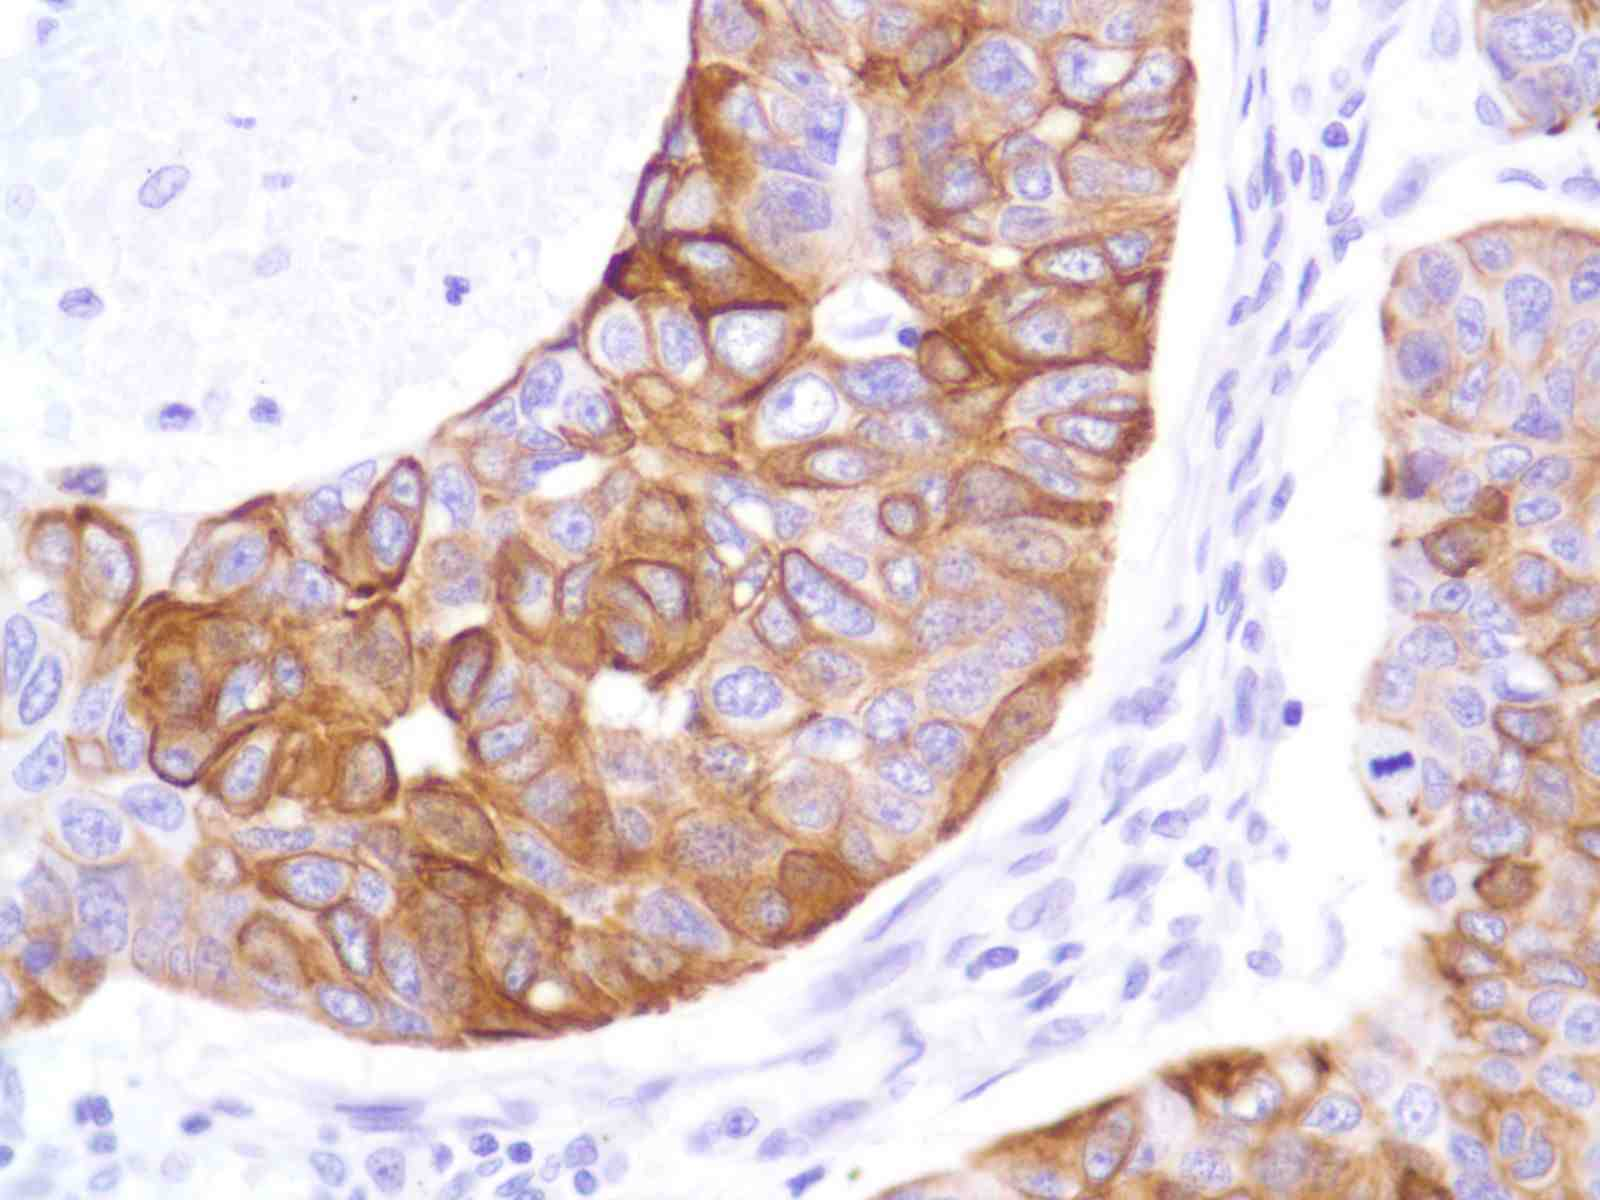 Human Lung Squamous Cell Carcinoma stained with anti-Keratin 8 antibody